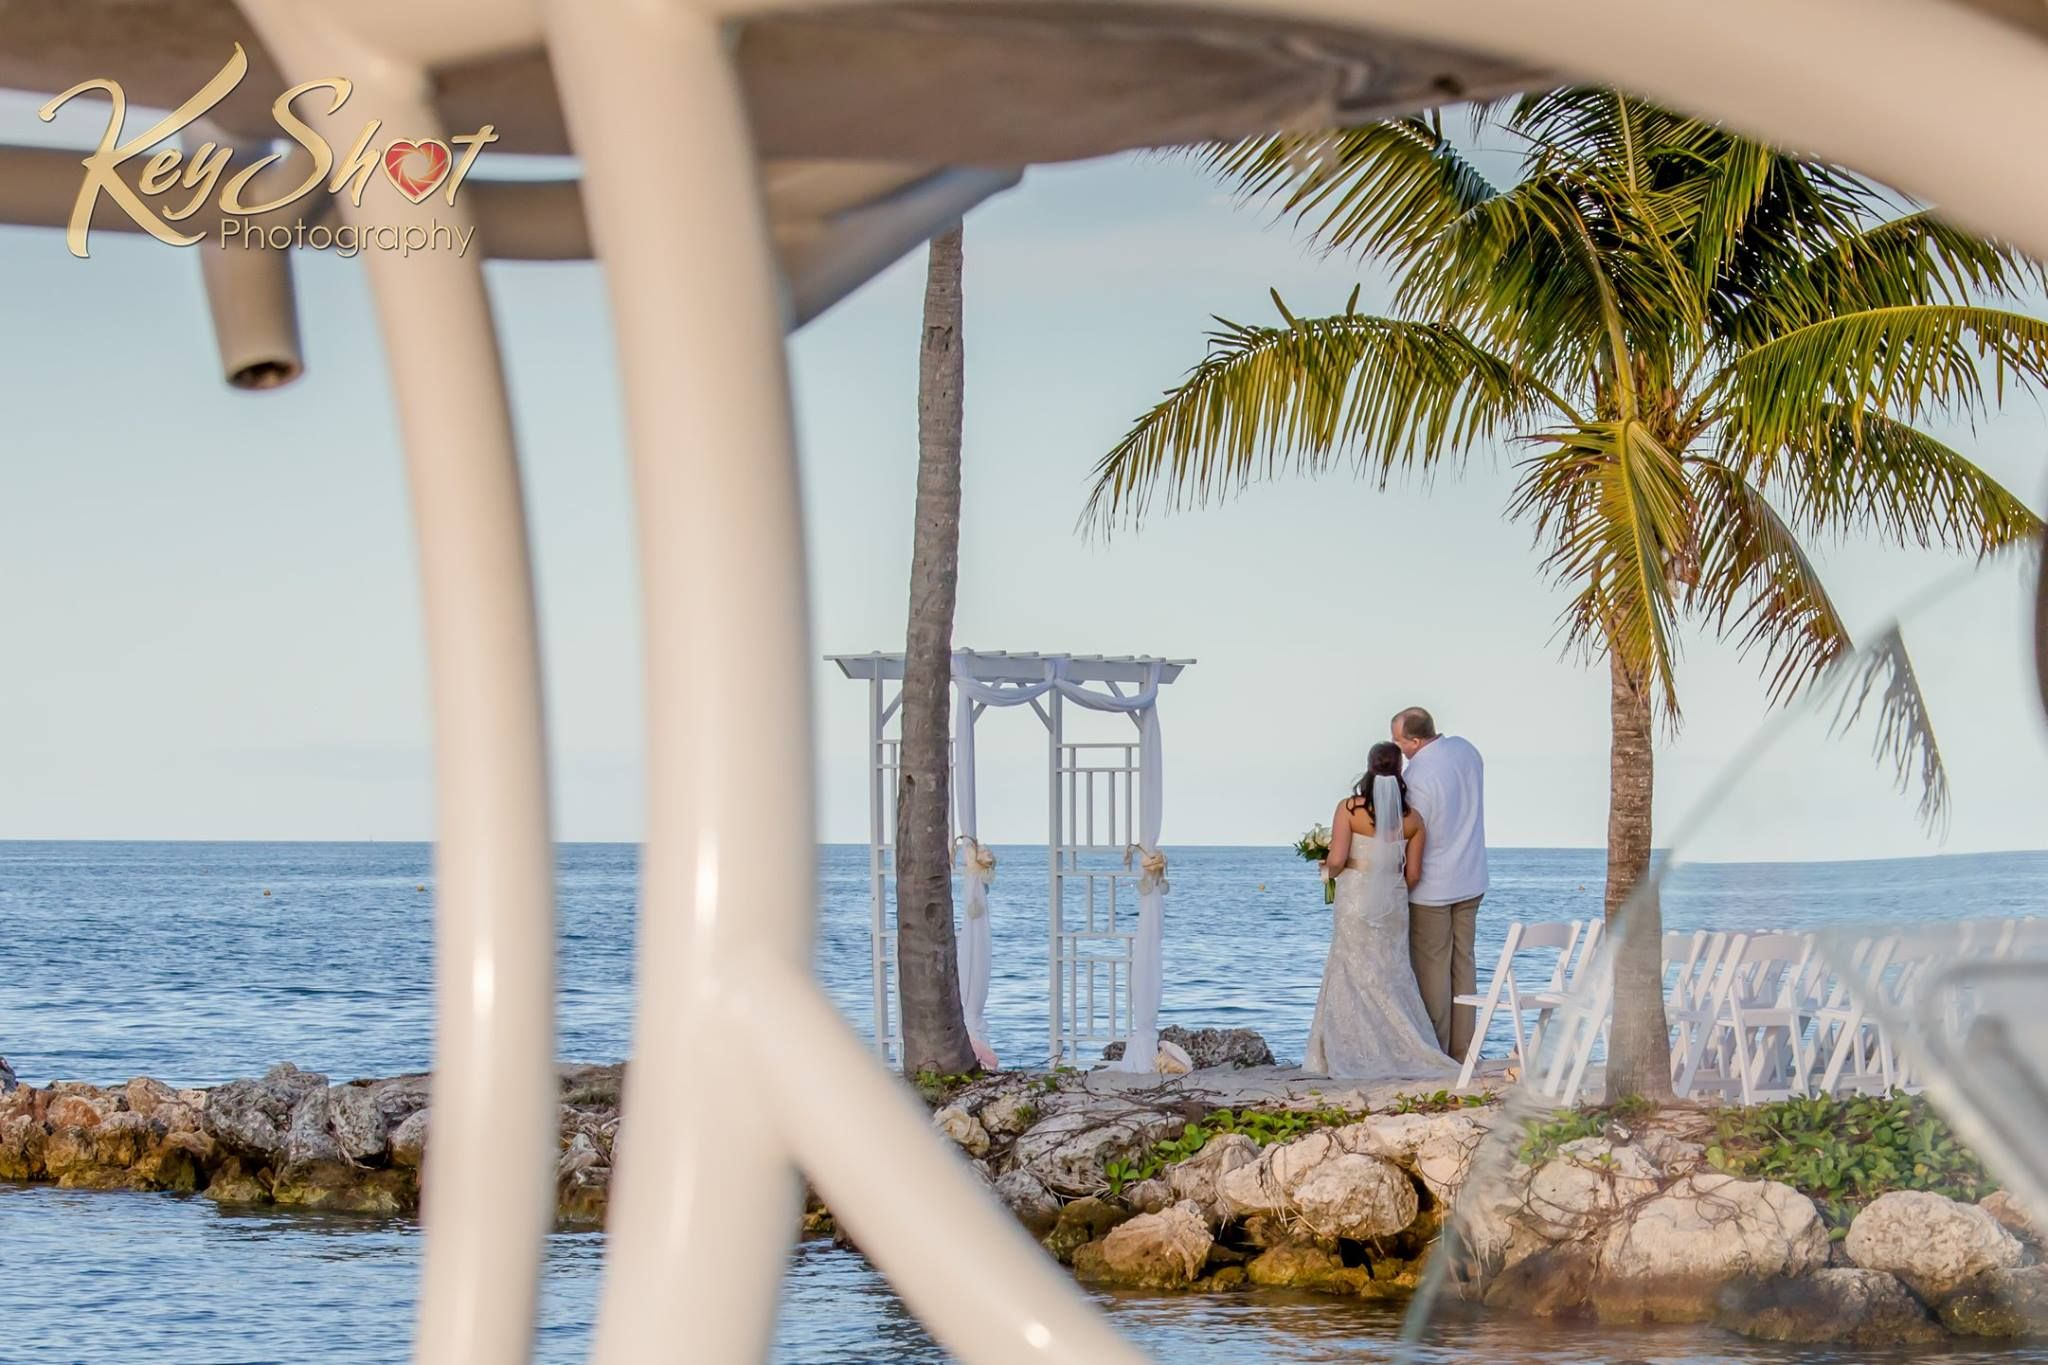 In honor of Wedding Wednesday... Where is your special place to get married at? #TheJetty #FaroBlanco #FLKeys #Marathon #Wedding #Ido #Tropical #Destination #KeyShotPhotography #PalmTrees